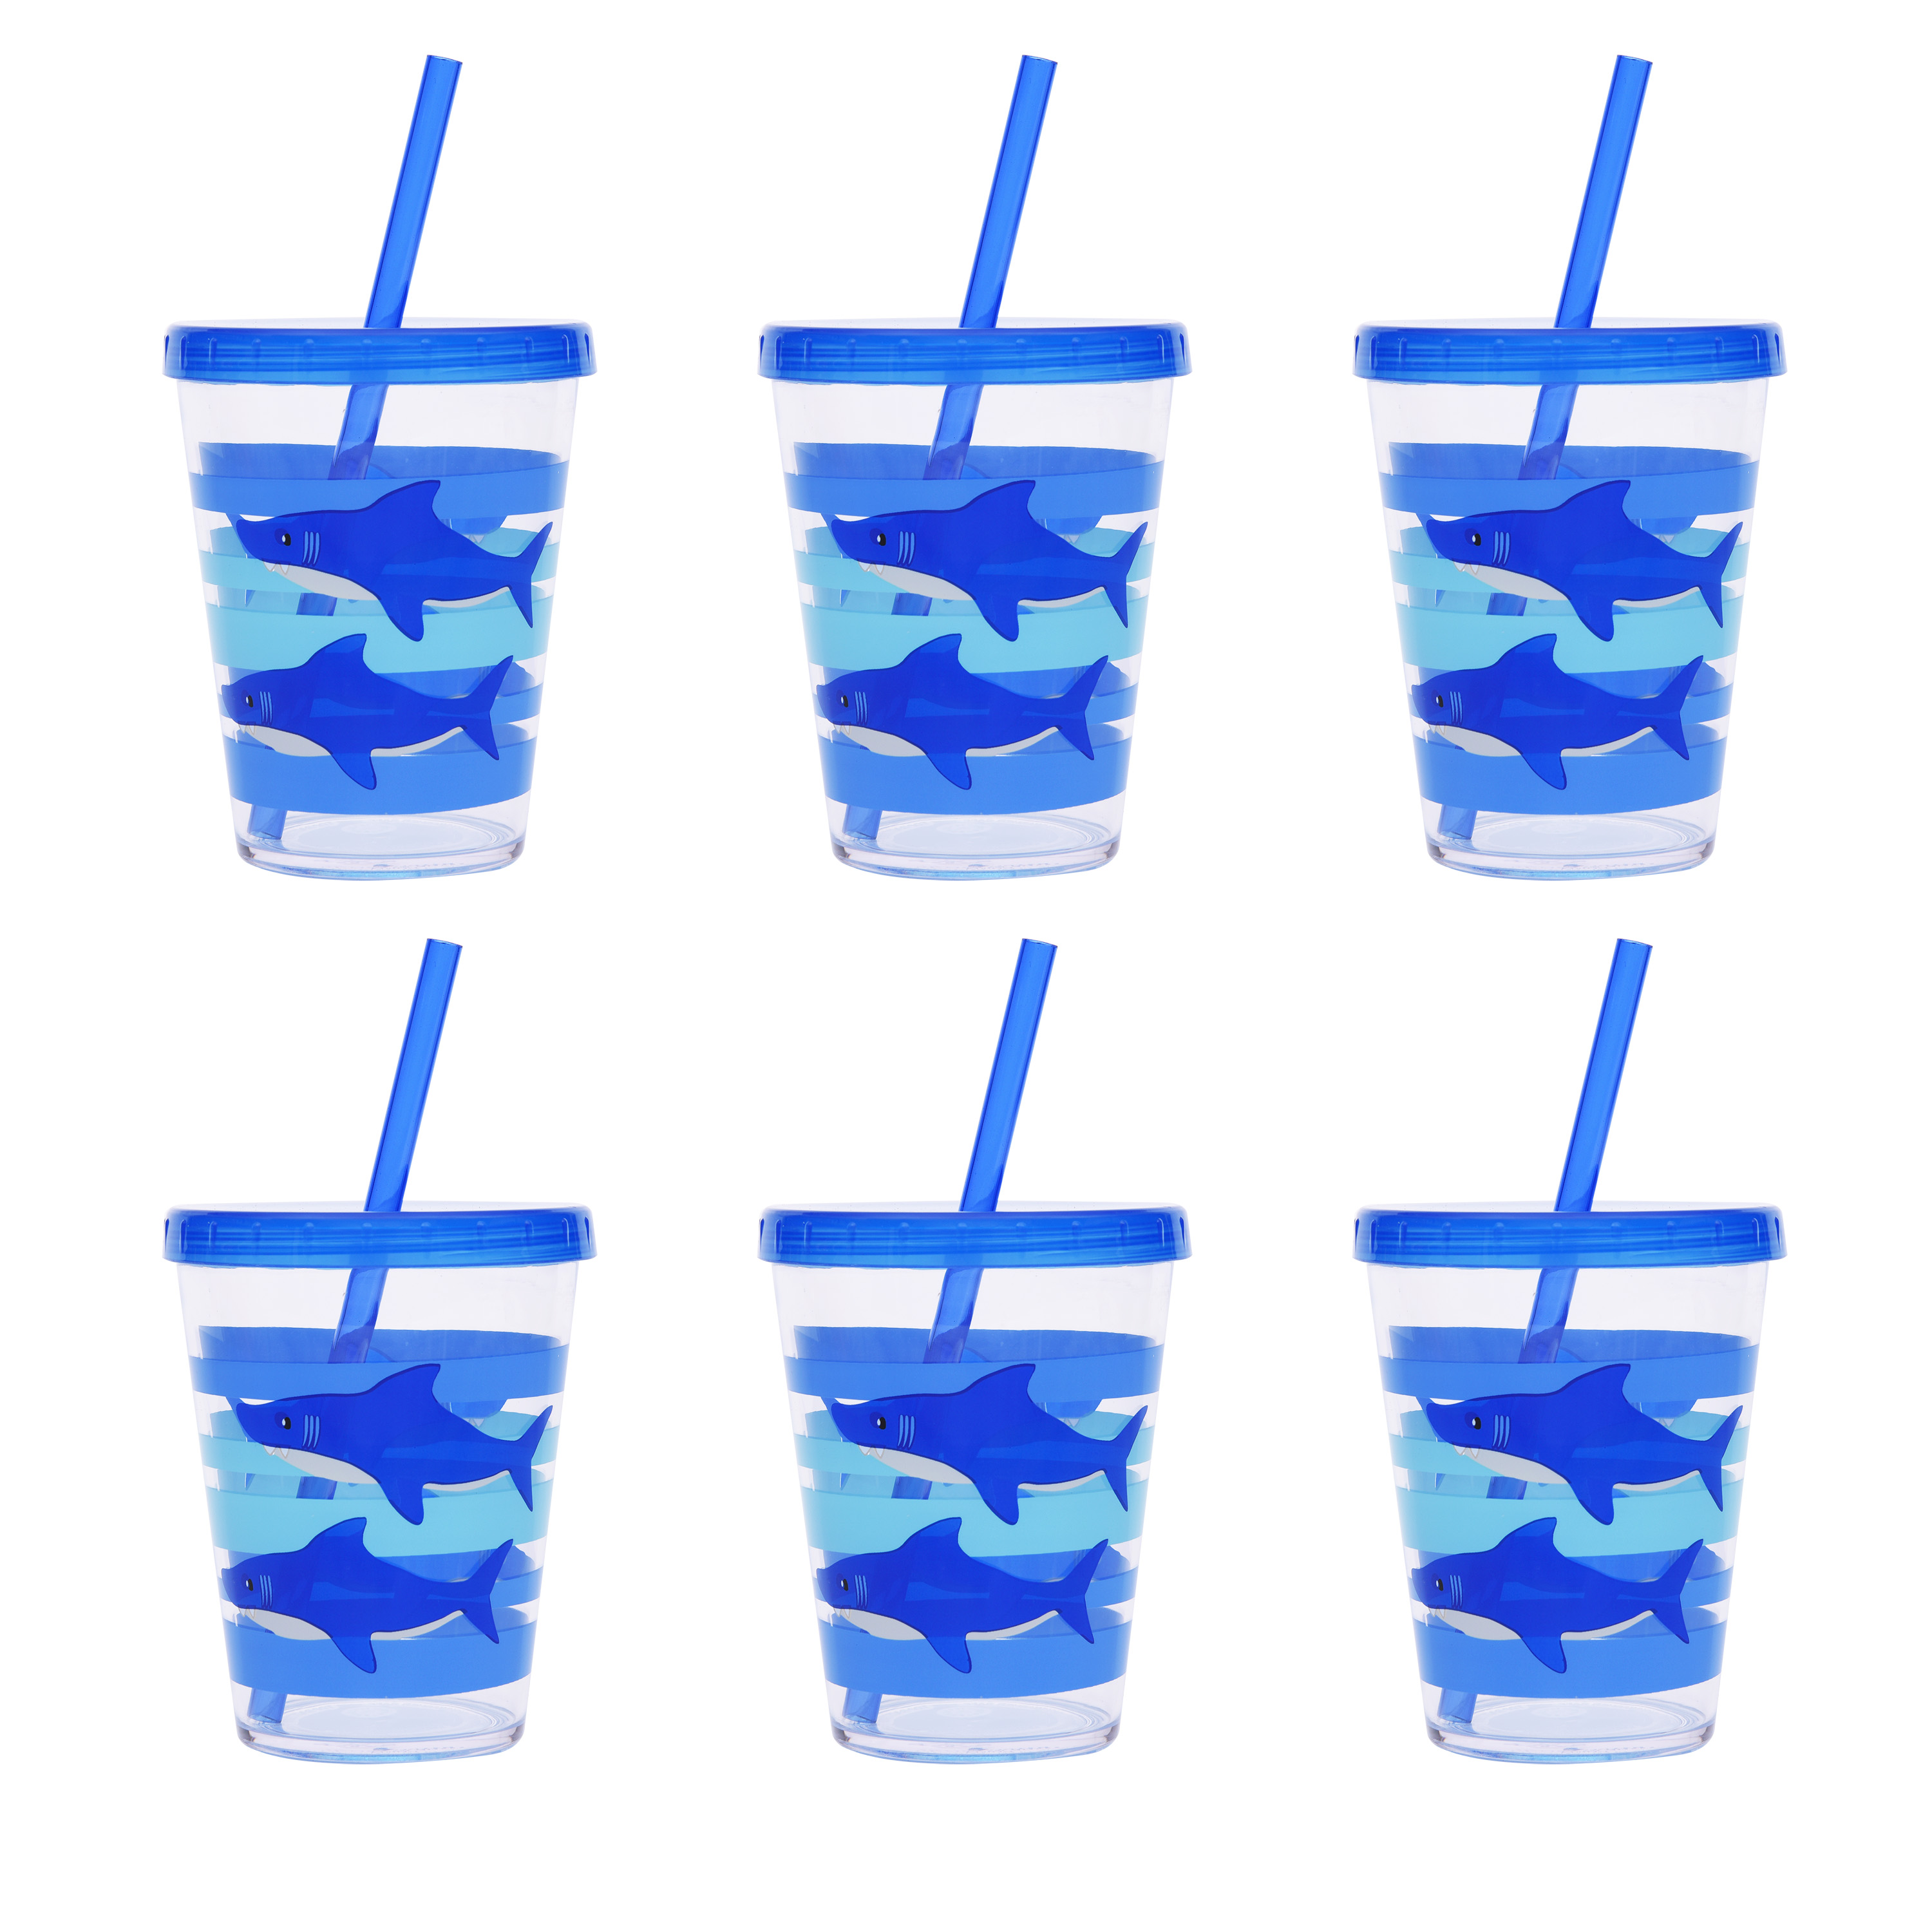 Mainstays Shark Melamine 6-Pack Tumbler with Straw and Lid Set, Blue